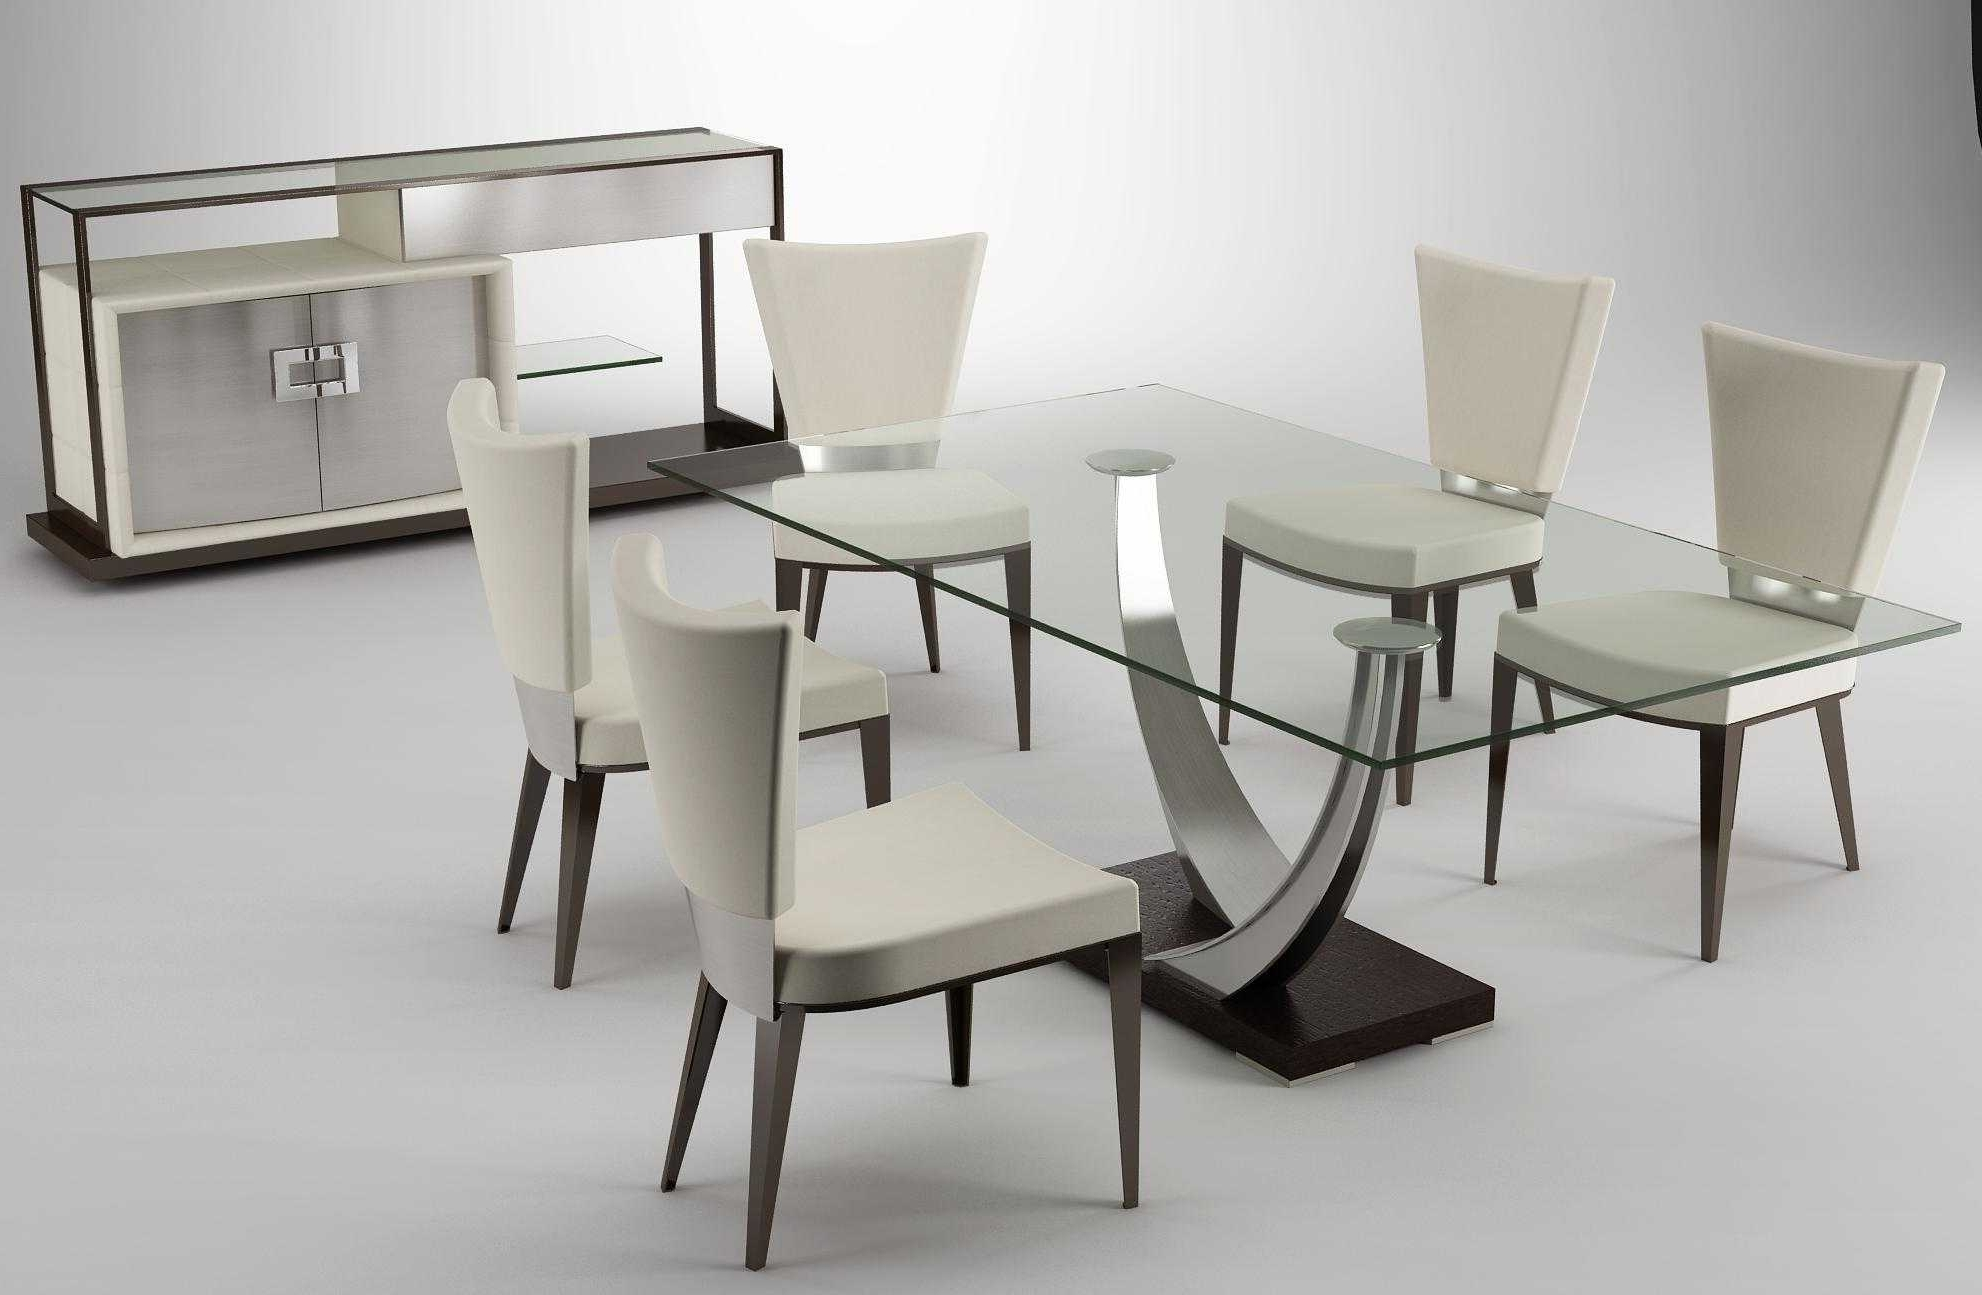 2017 Dining Room Contemporary Nook Dining Set Modern Glass Dining Table Pertaining To Contemporary Dining Room Chairs (Gallery 4 of 25)